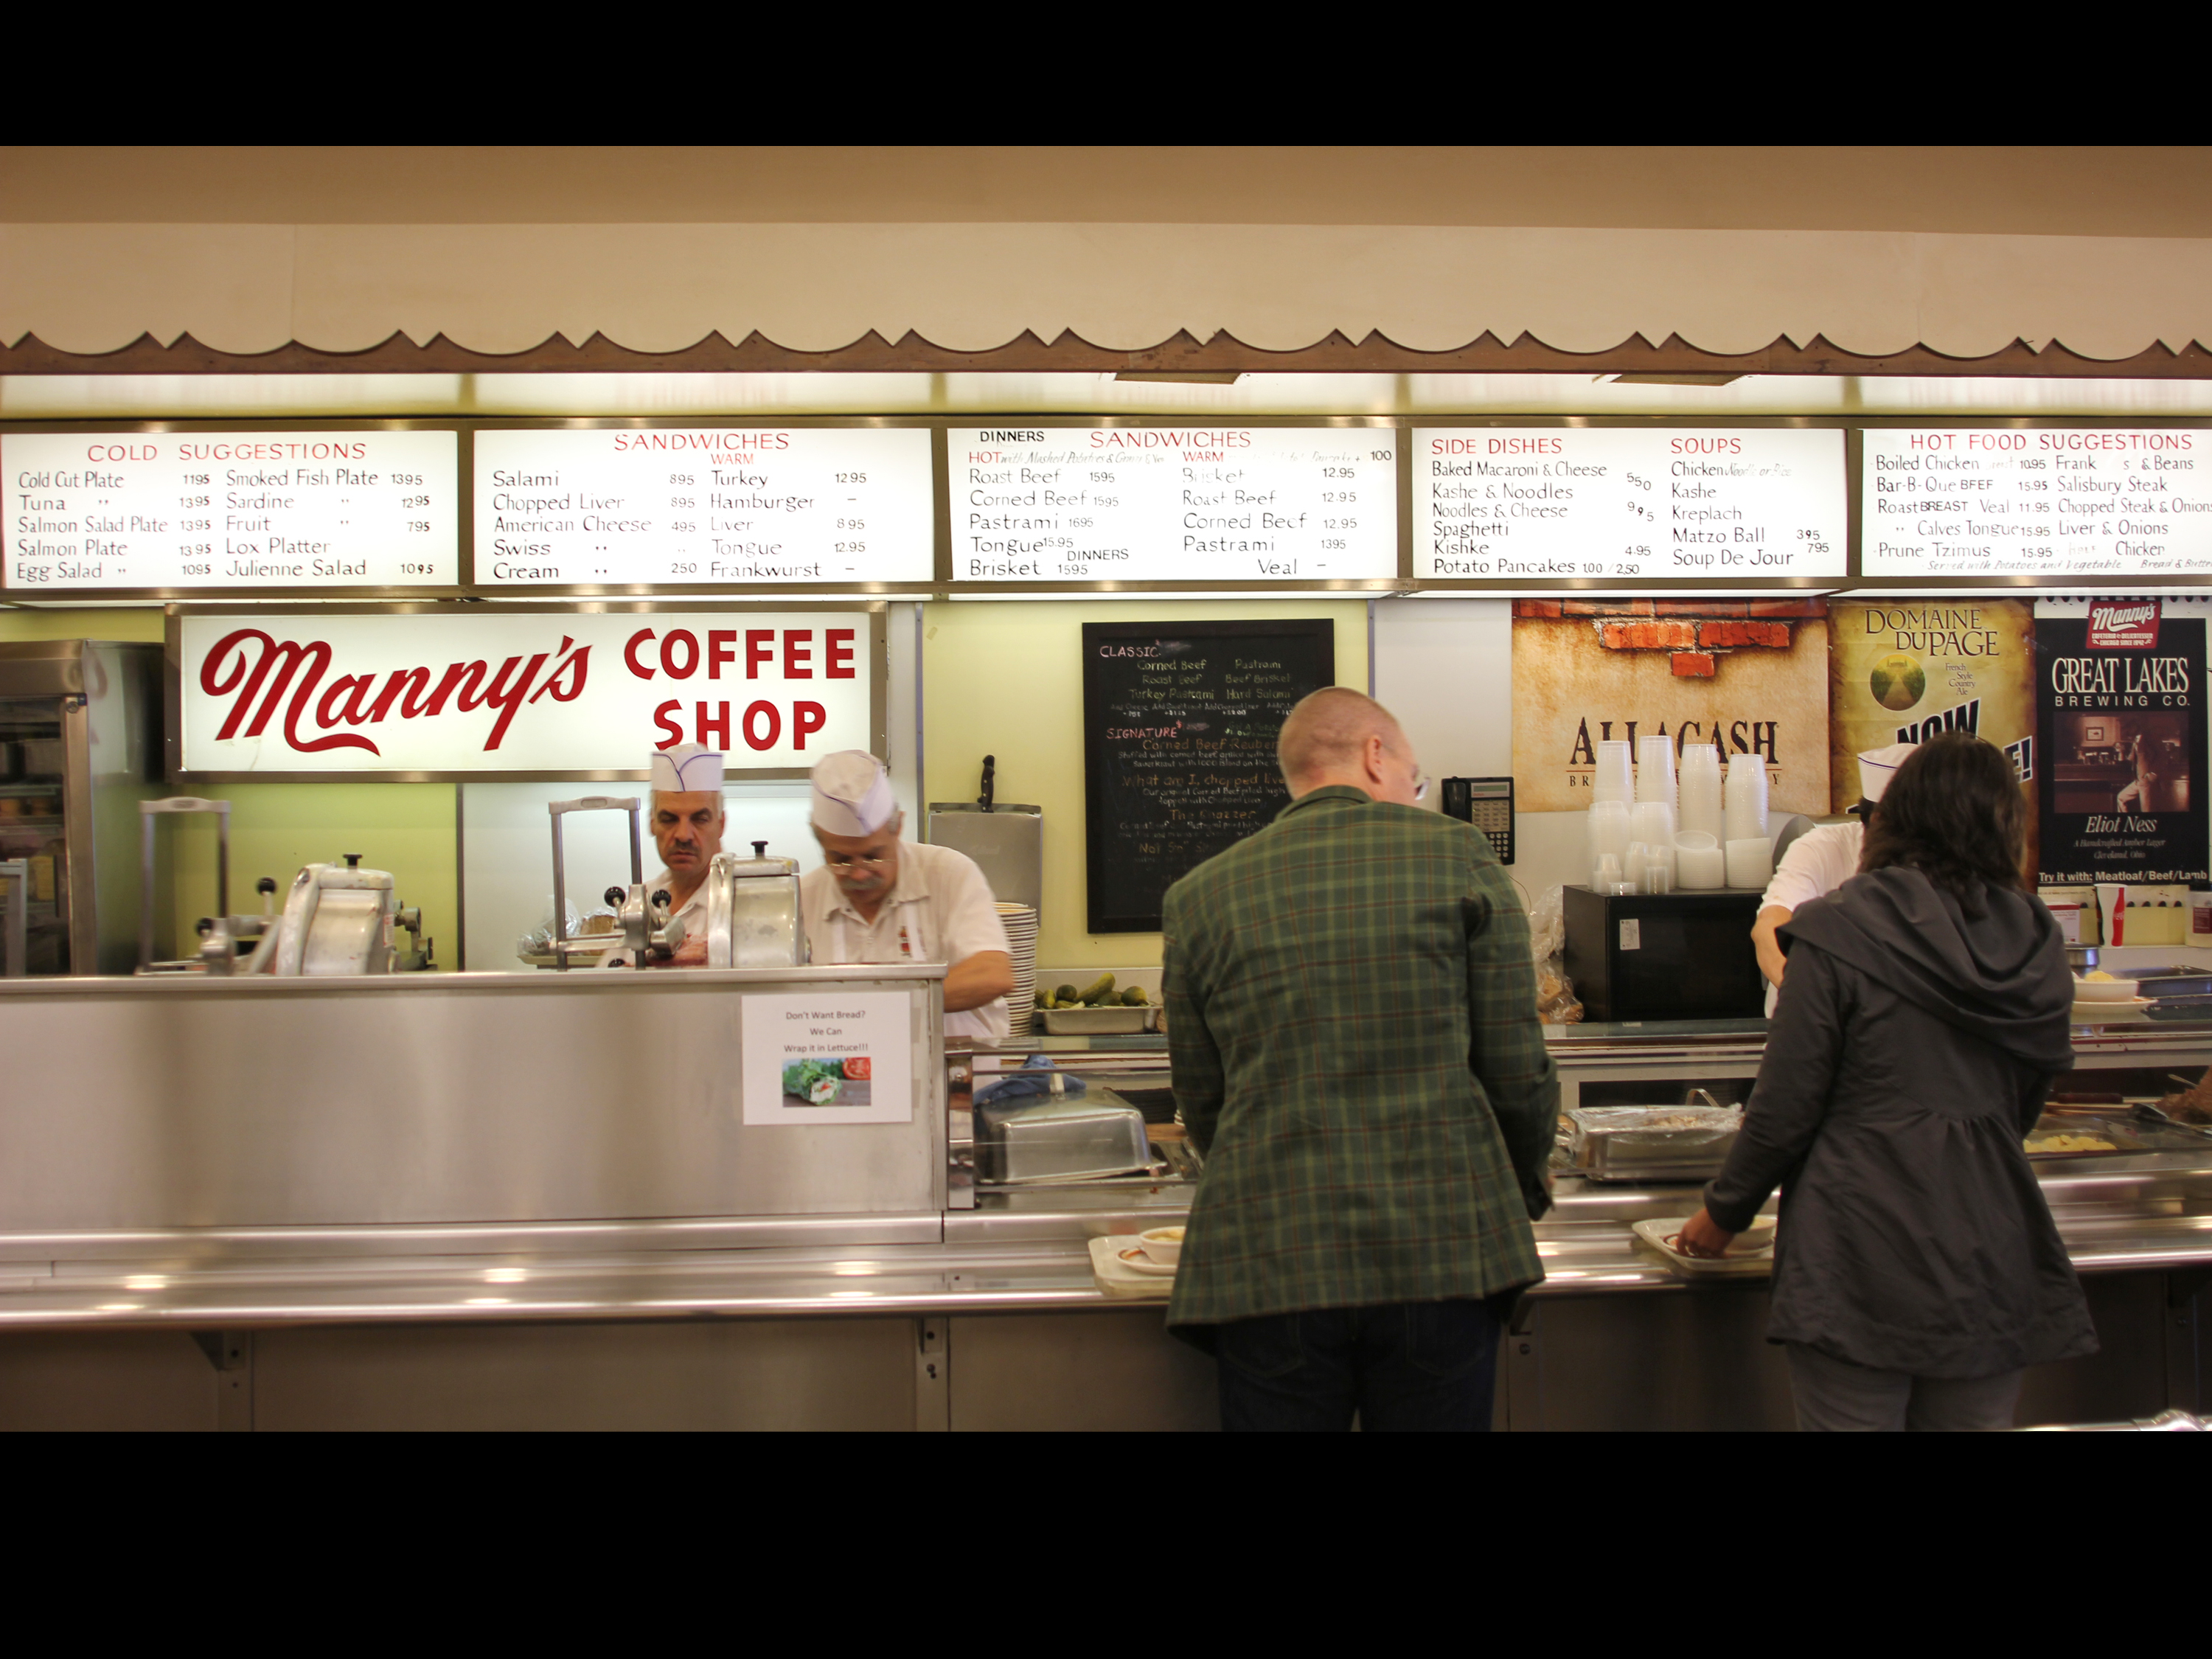 AFTER 70 YEARS, MANNY'S IS FINALLY BECOMING A DELICATESSEN